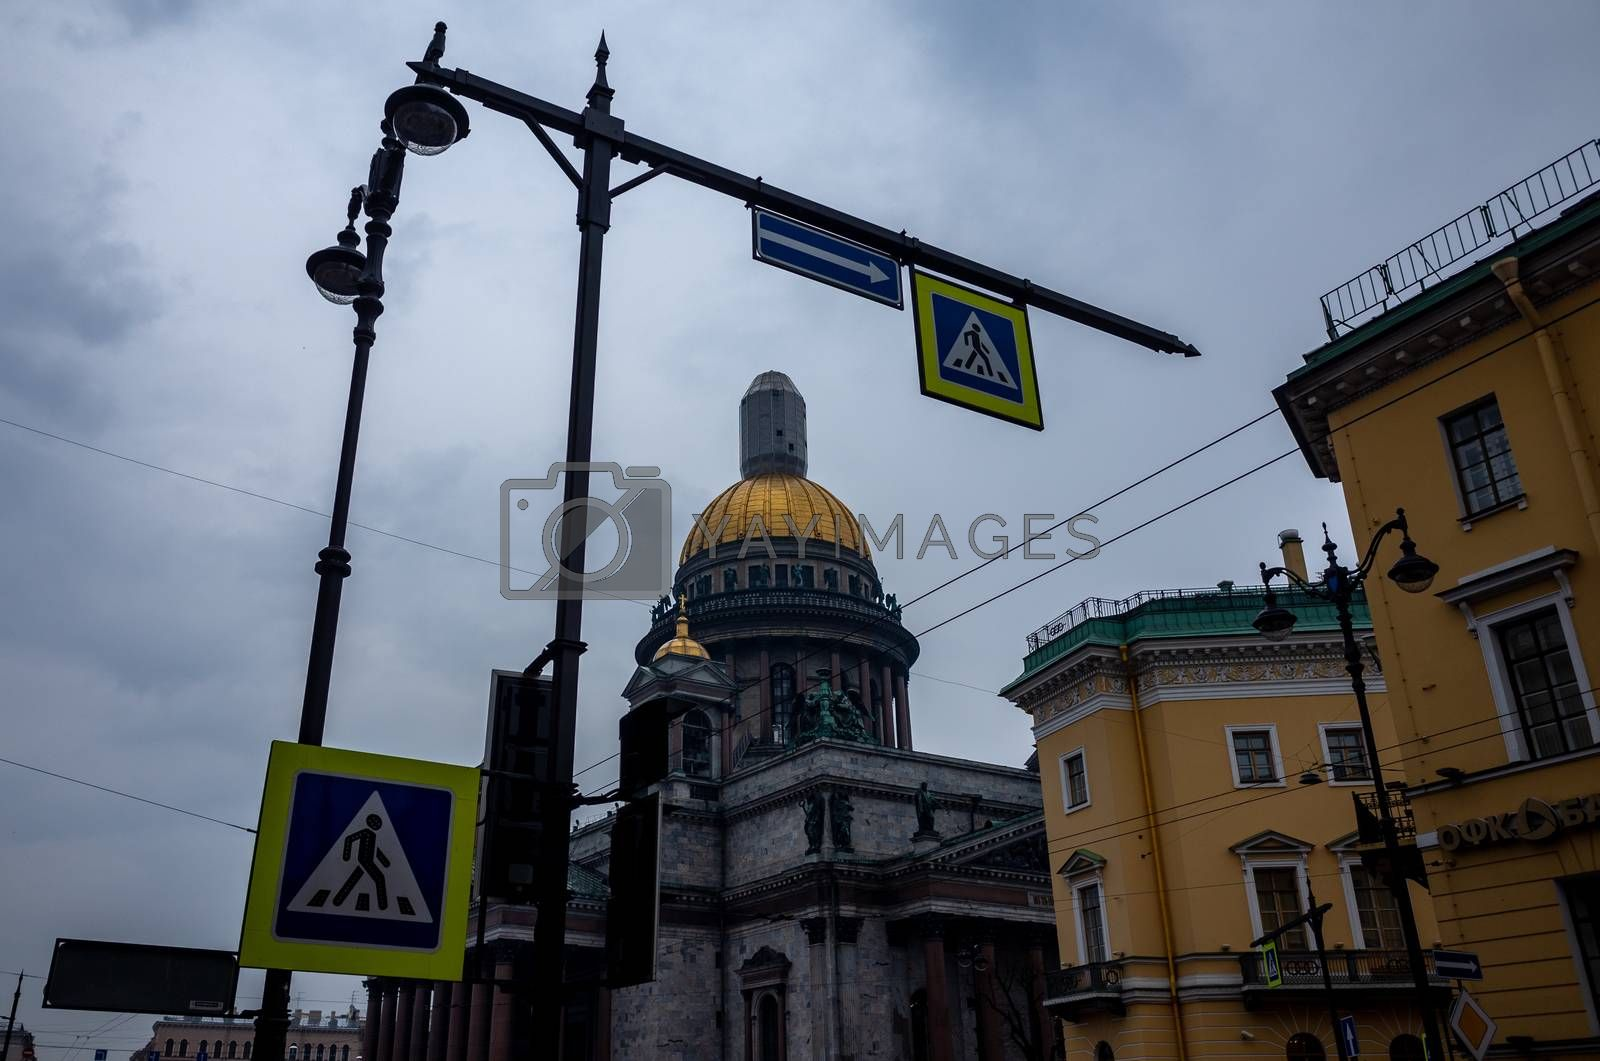 April 17, 2018. St. Petersburg, Russia. St. Isaac's Cathedral during the restoration in cloudy weather.